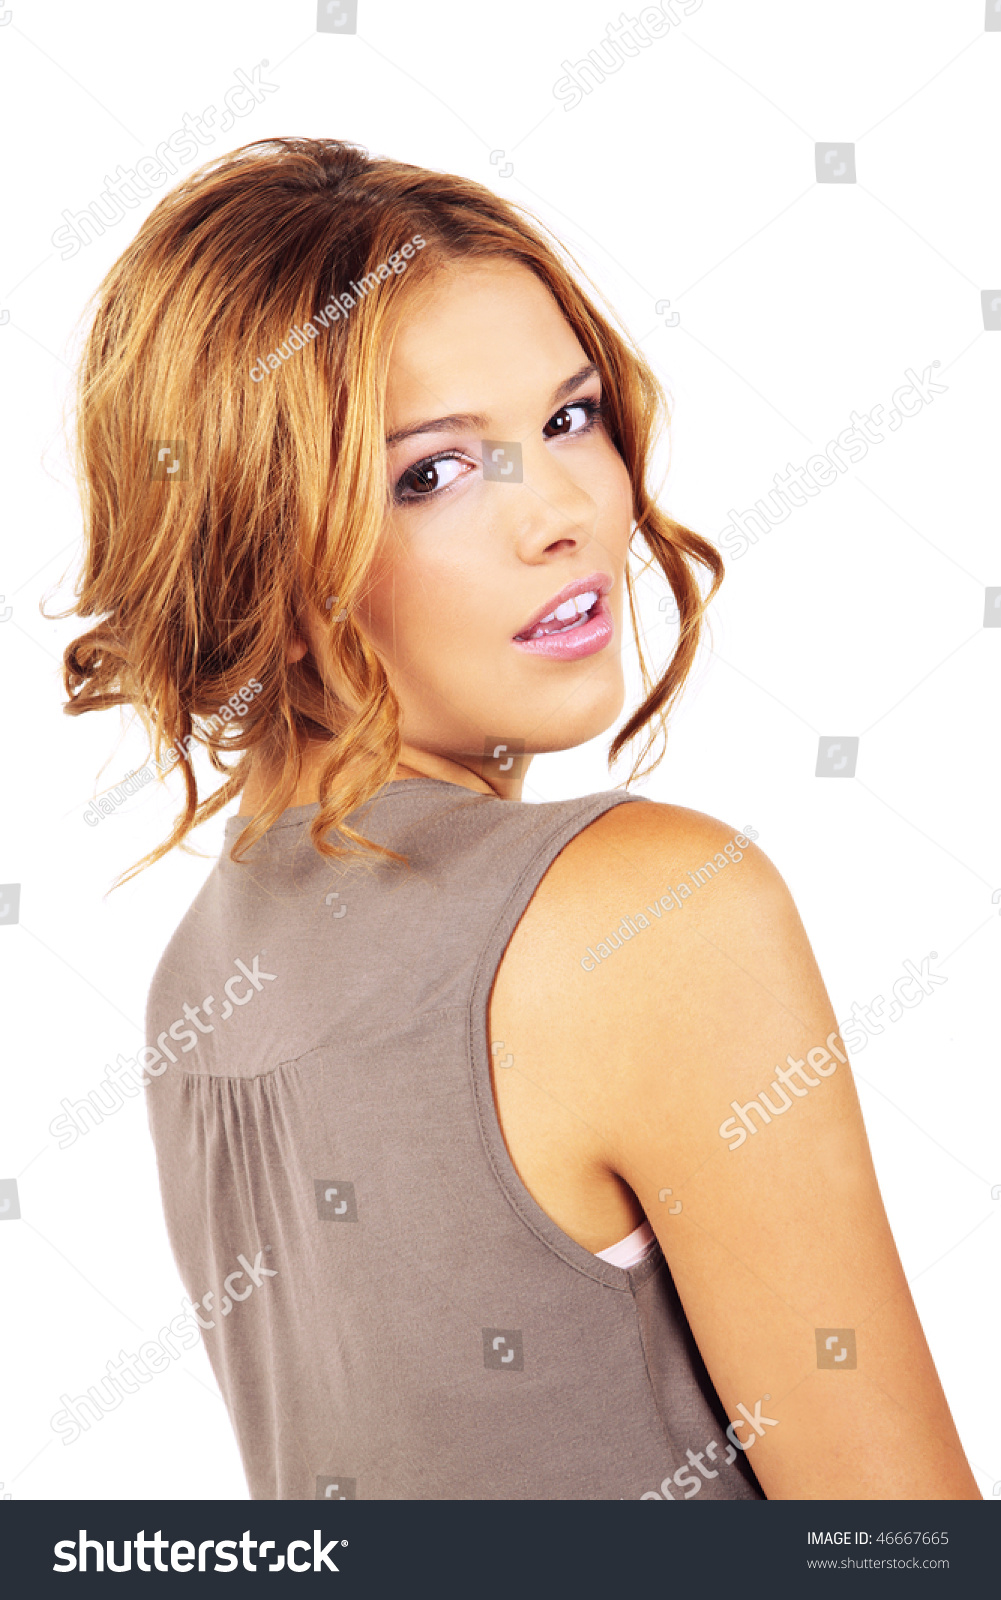 Great Casual Day Make Up Of Blond Beautiful Girl Looking Over The Shoulder  Isolated On White